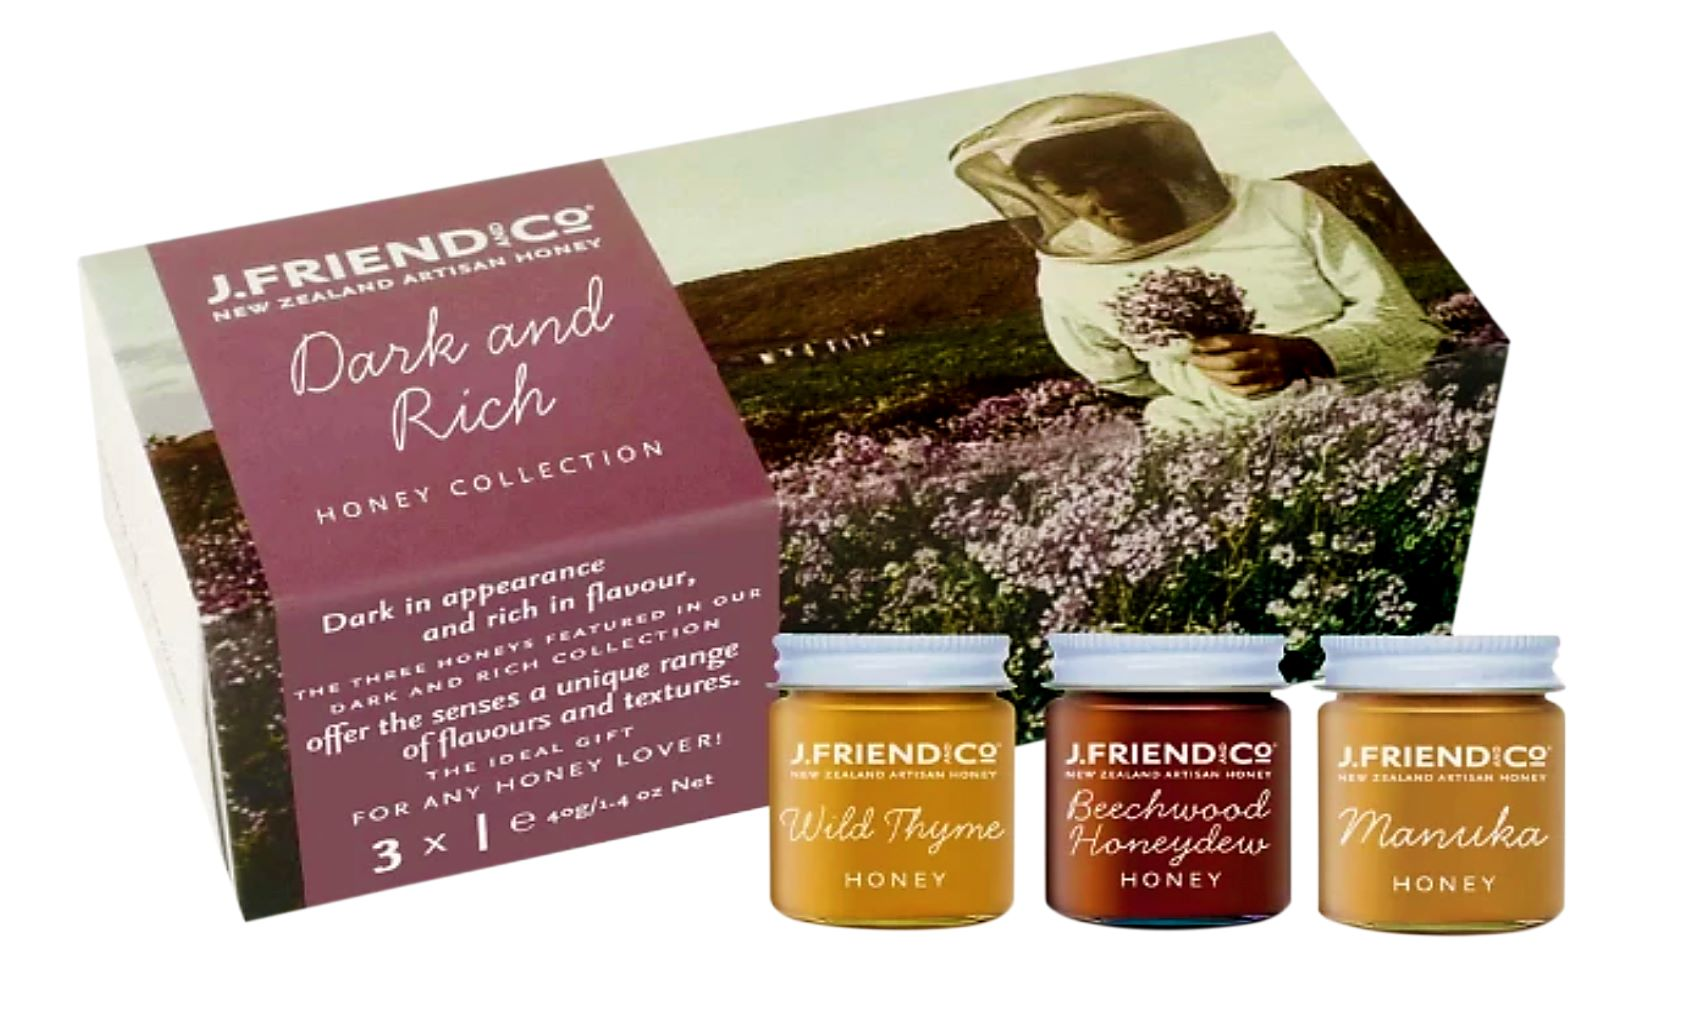 Dark and Rich Honey Collection - Manuka Honey | J Friend & Co